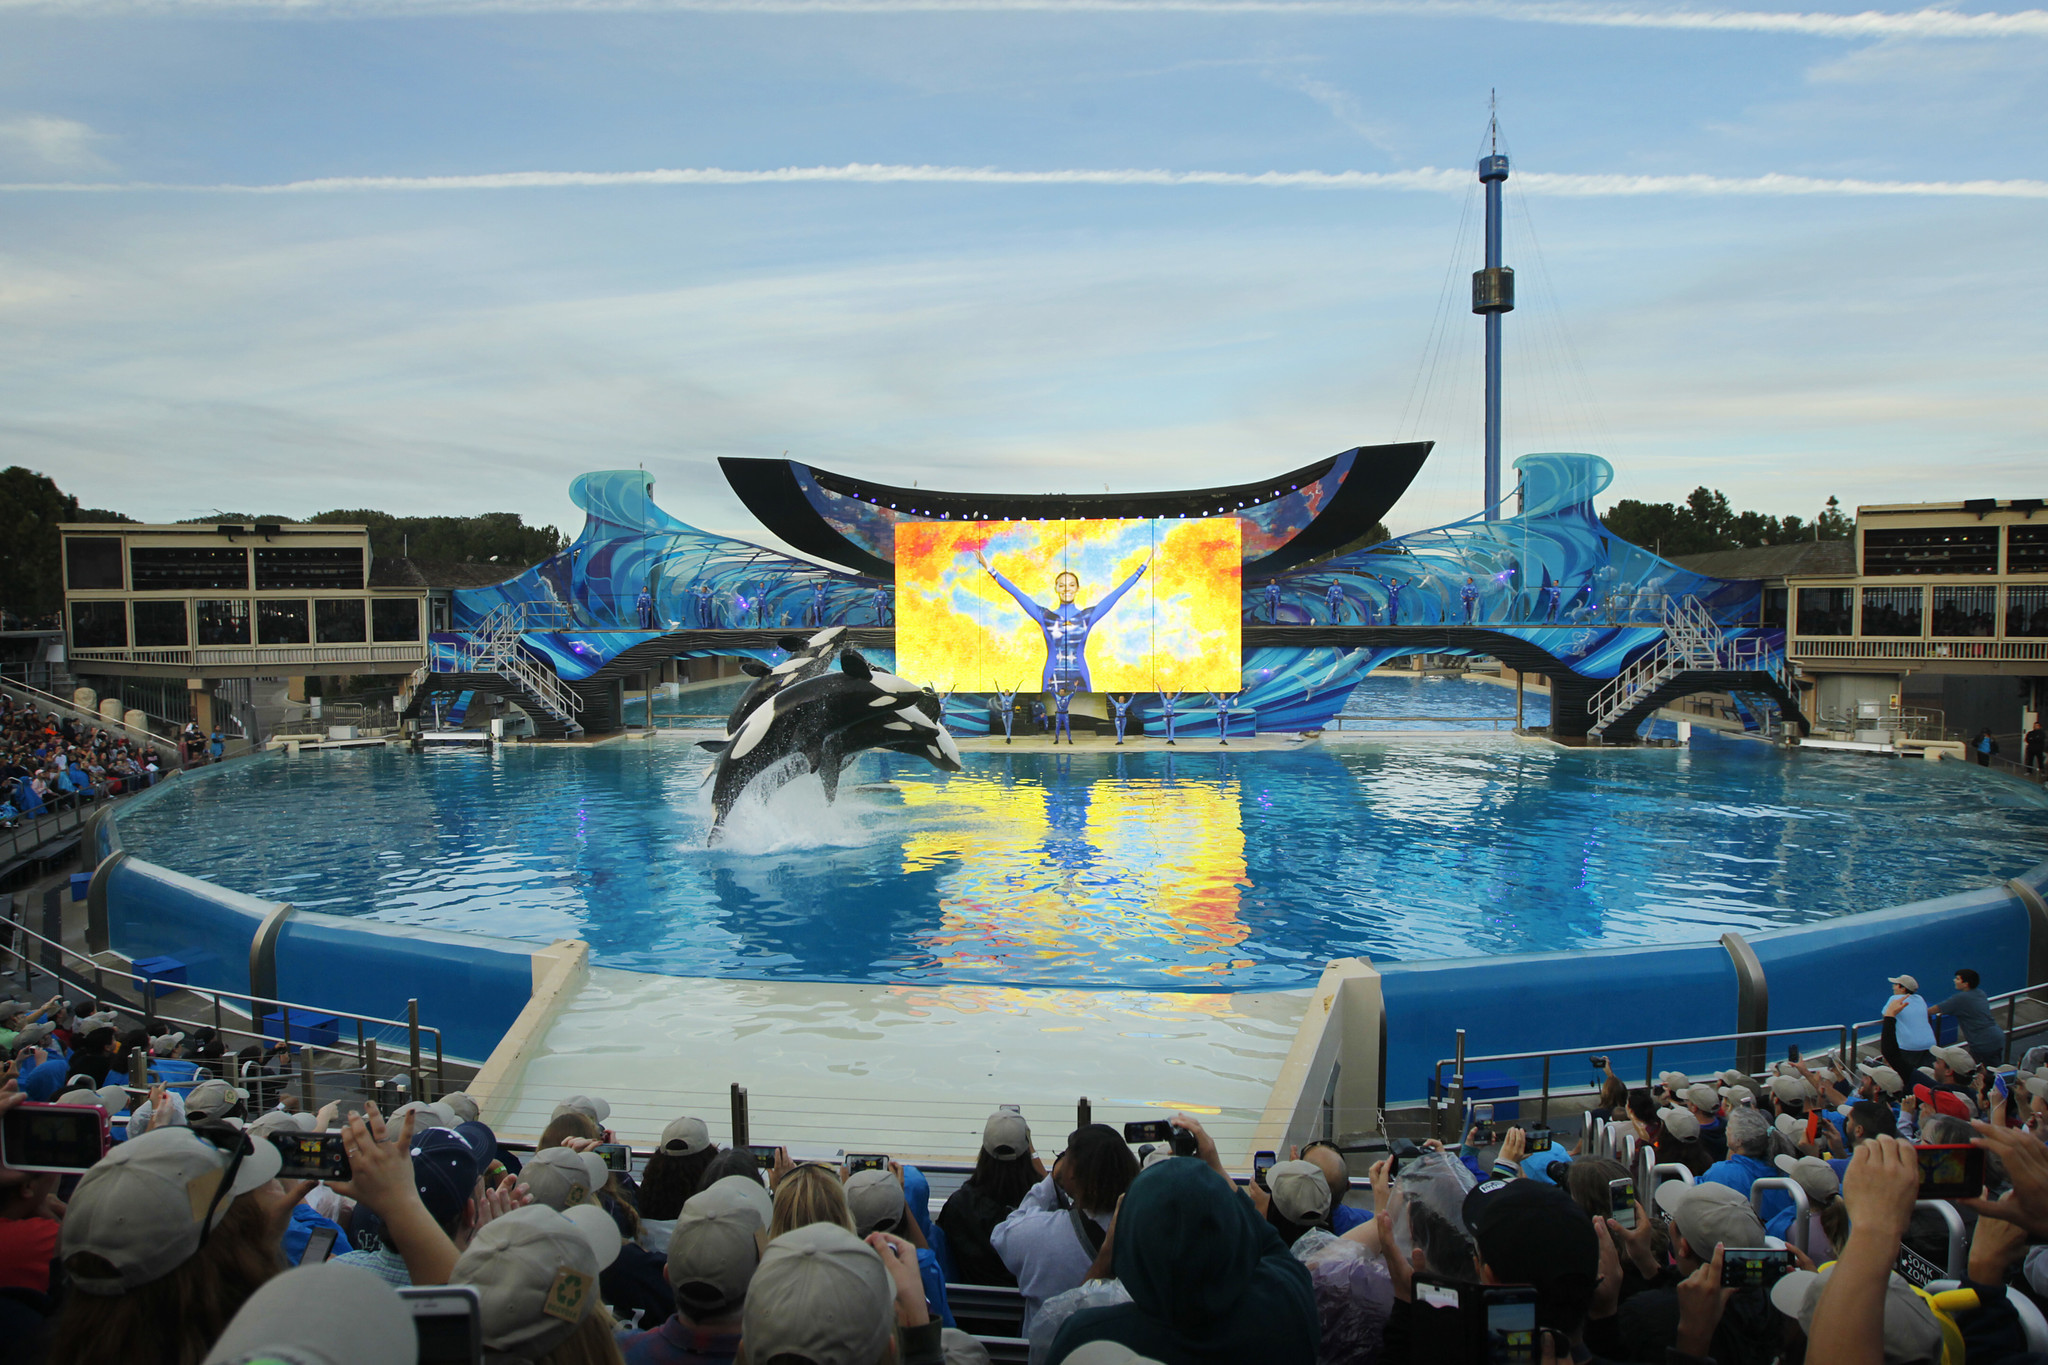 sea world Come celebrate the wonders of the sea at seaworld® san diego experience the amazing shamu show, and thrilling rides like journey to atlantis®, shipwreck rapids&#174 and wild arctic&#174 and more.